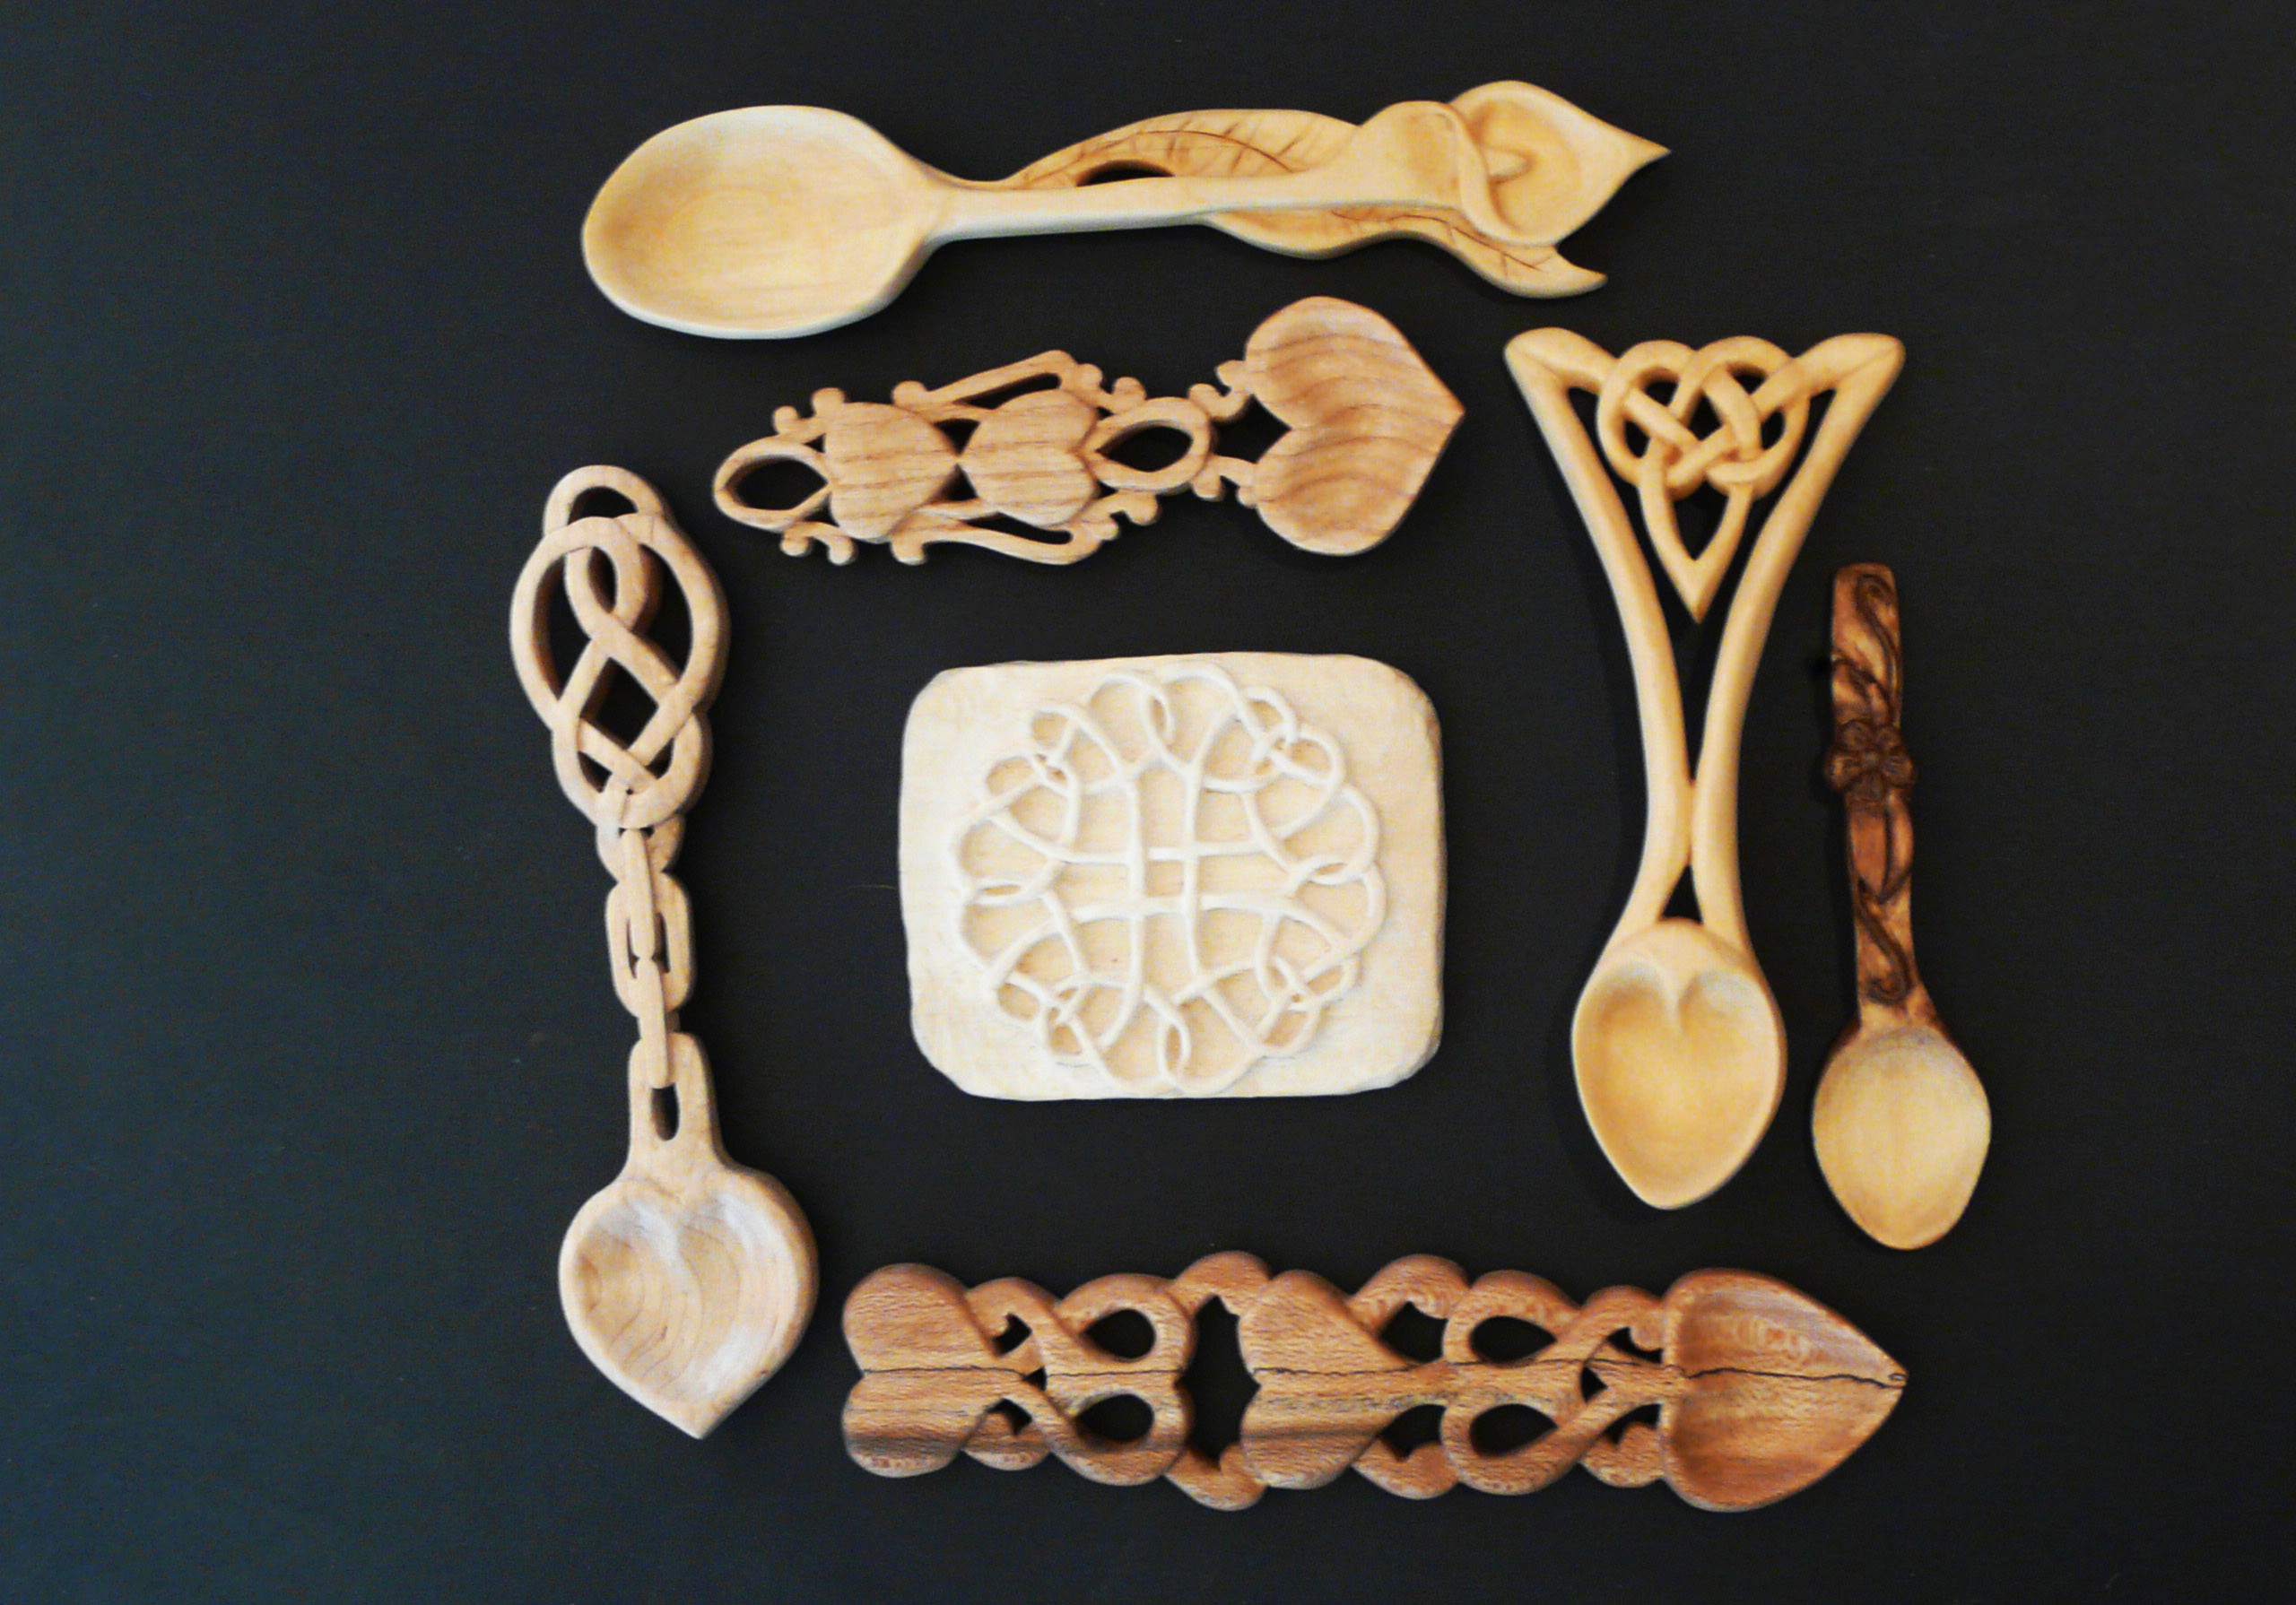 Love spoons and unfinished relief carving